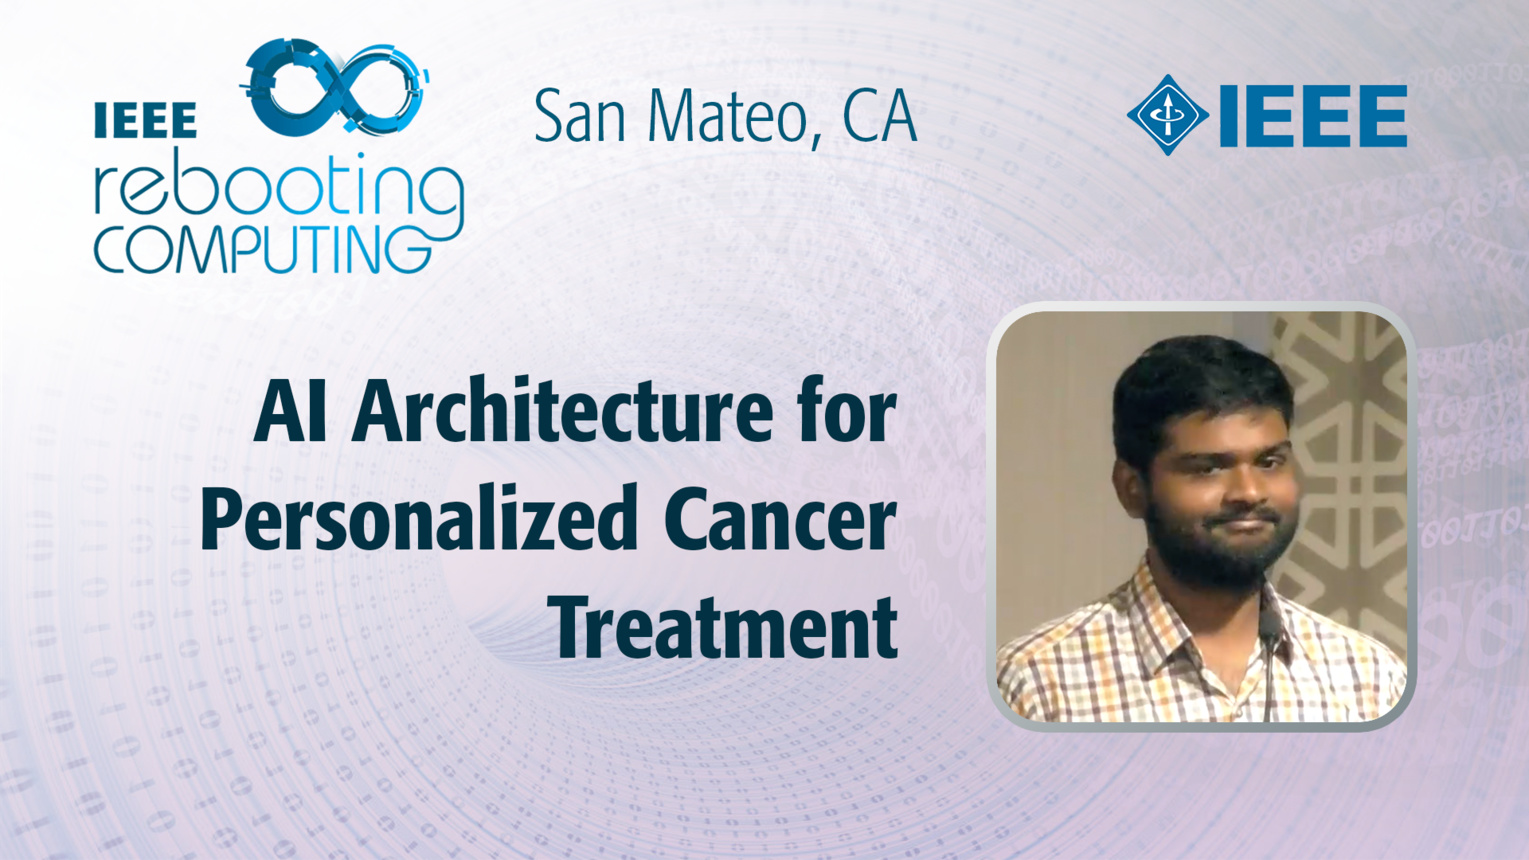 Reconfigurable Probabilistic AI Architecture for Personalized Cancer Treatment - Sourabh Kulkarni - ICRC San Mateo, 2019